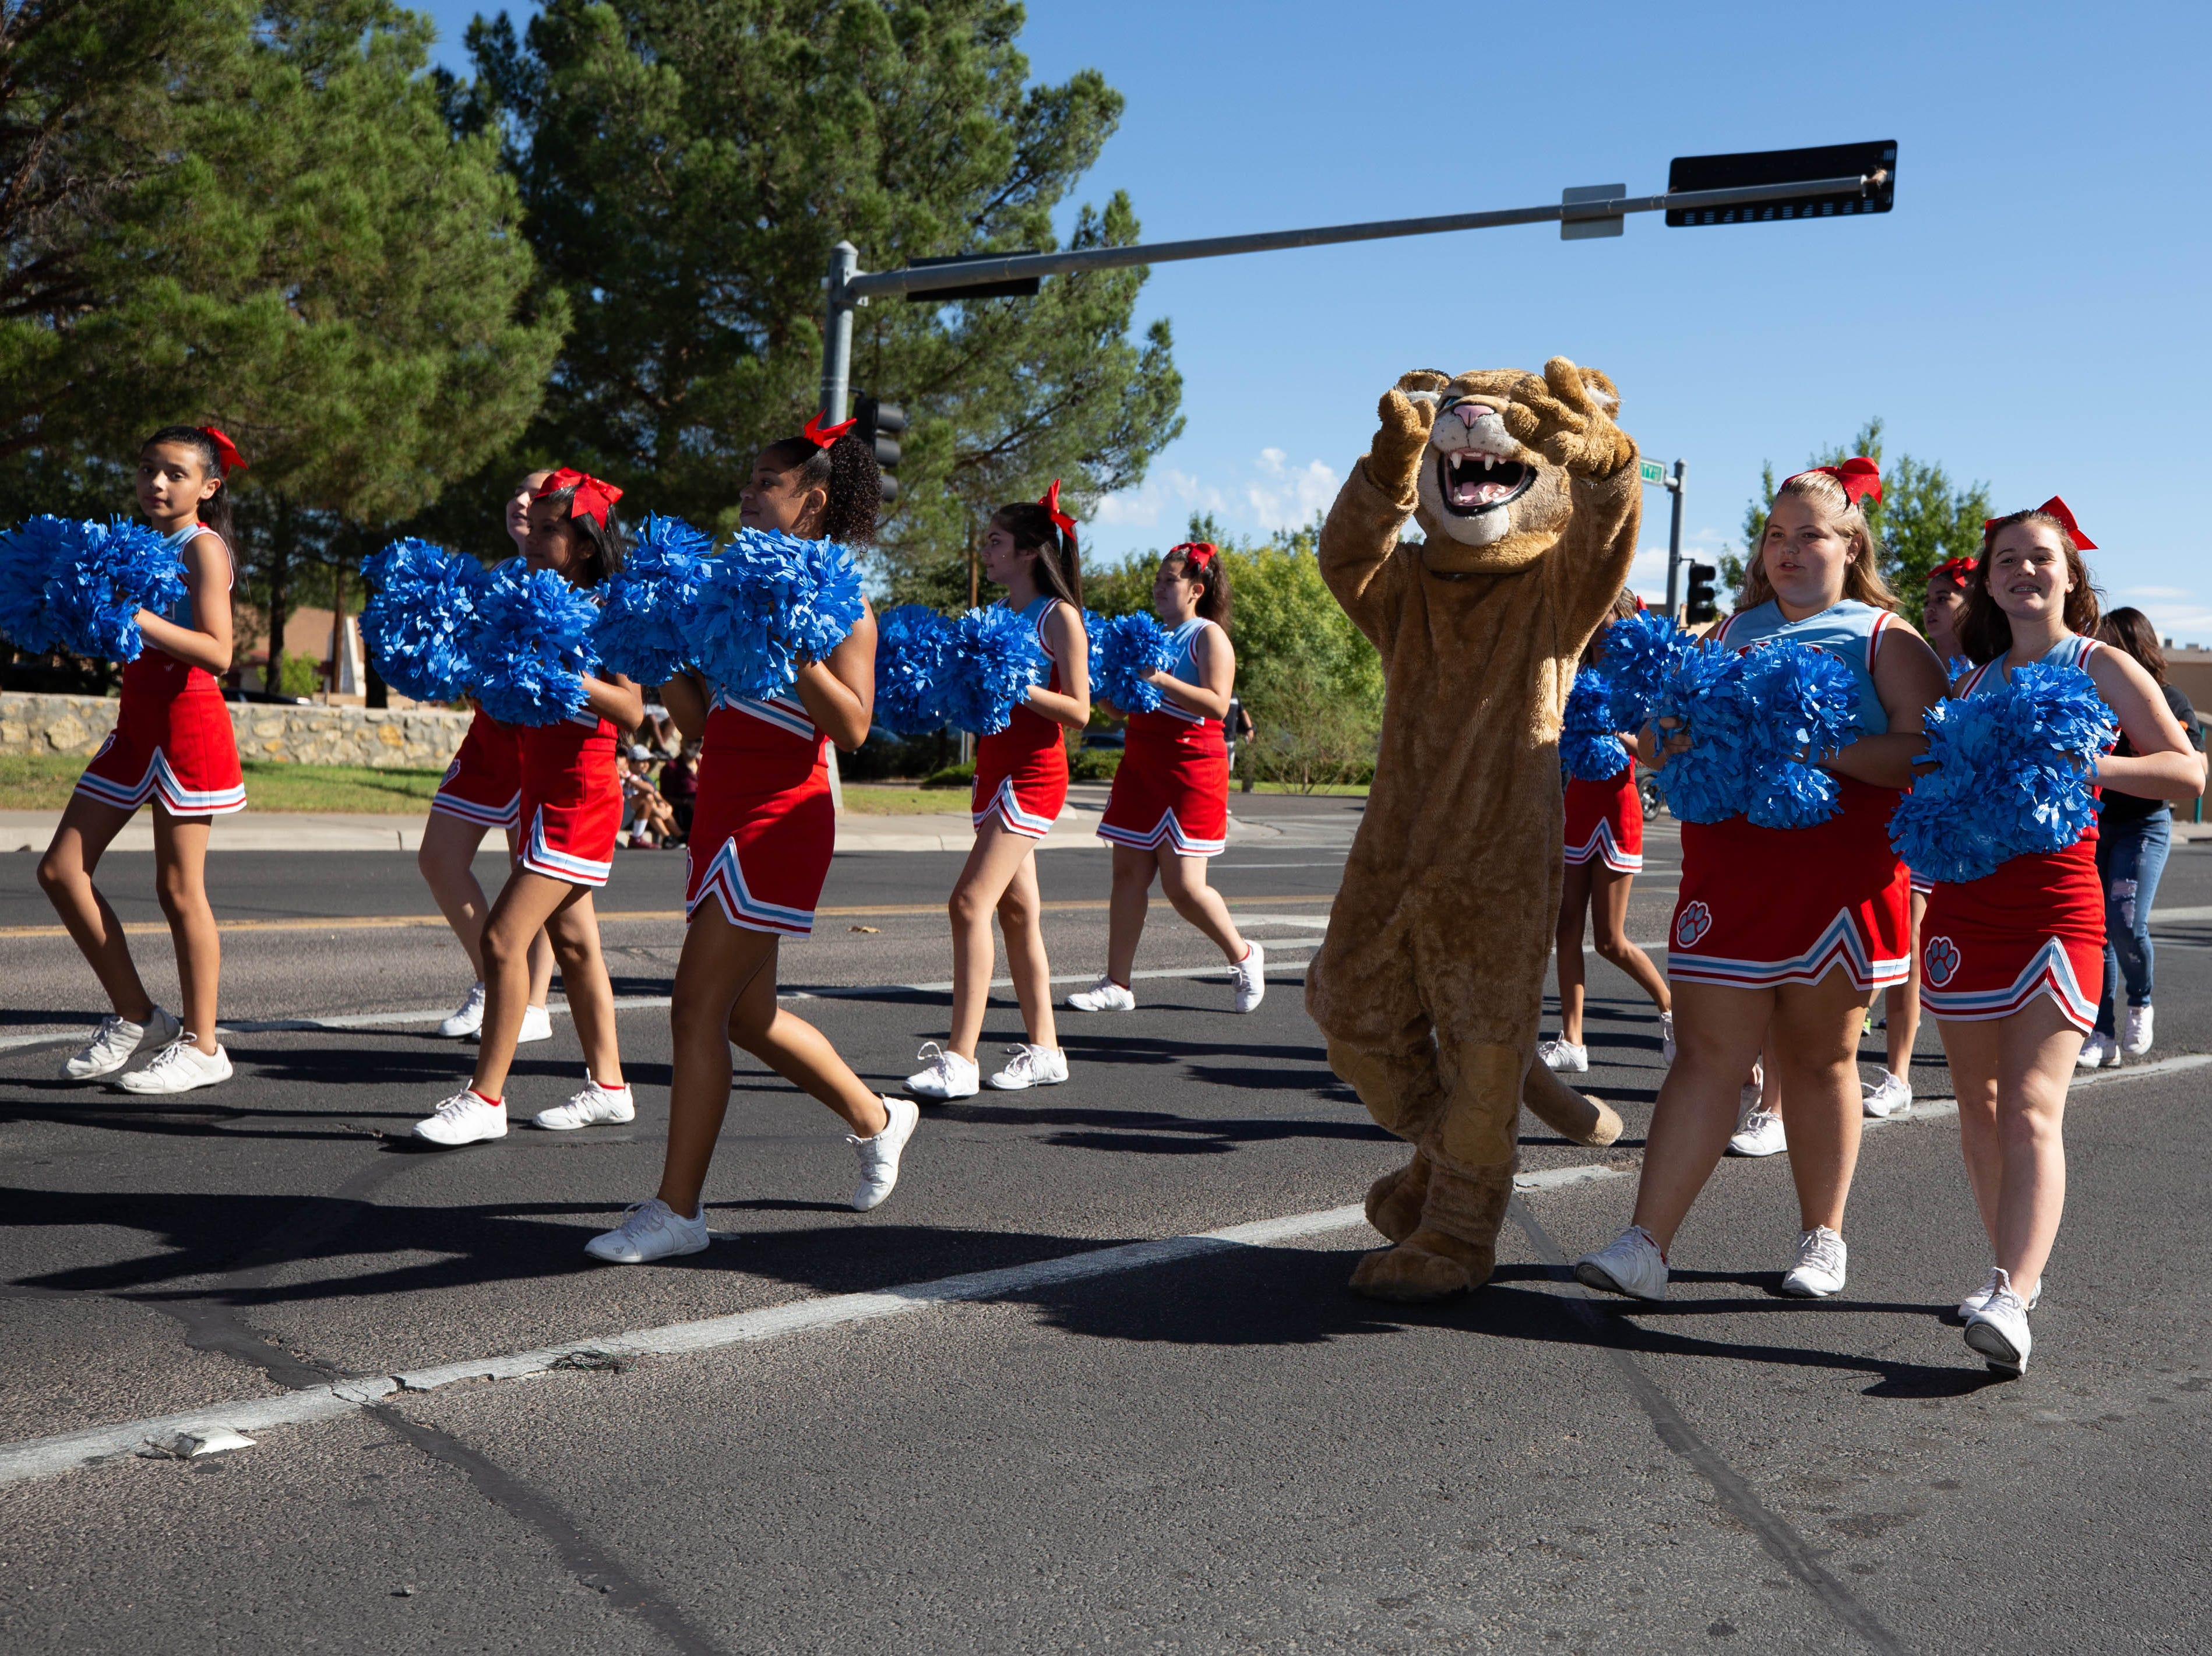 Cheer team from Lynn Middle School at the NMSU Homecoming Parade on October 6, 2018.